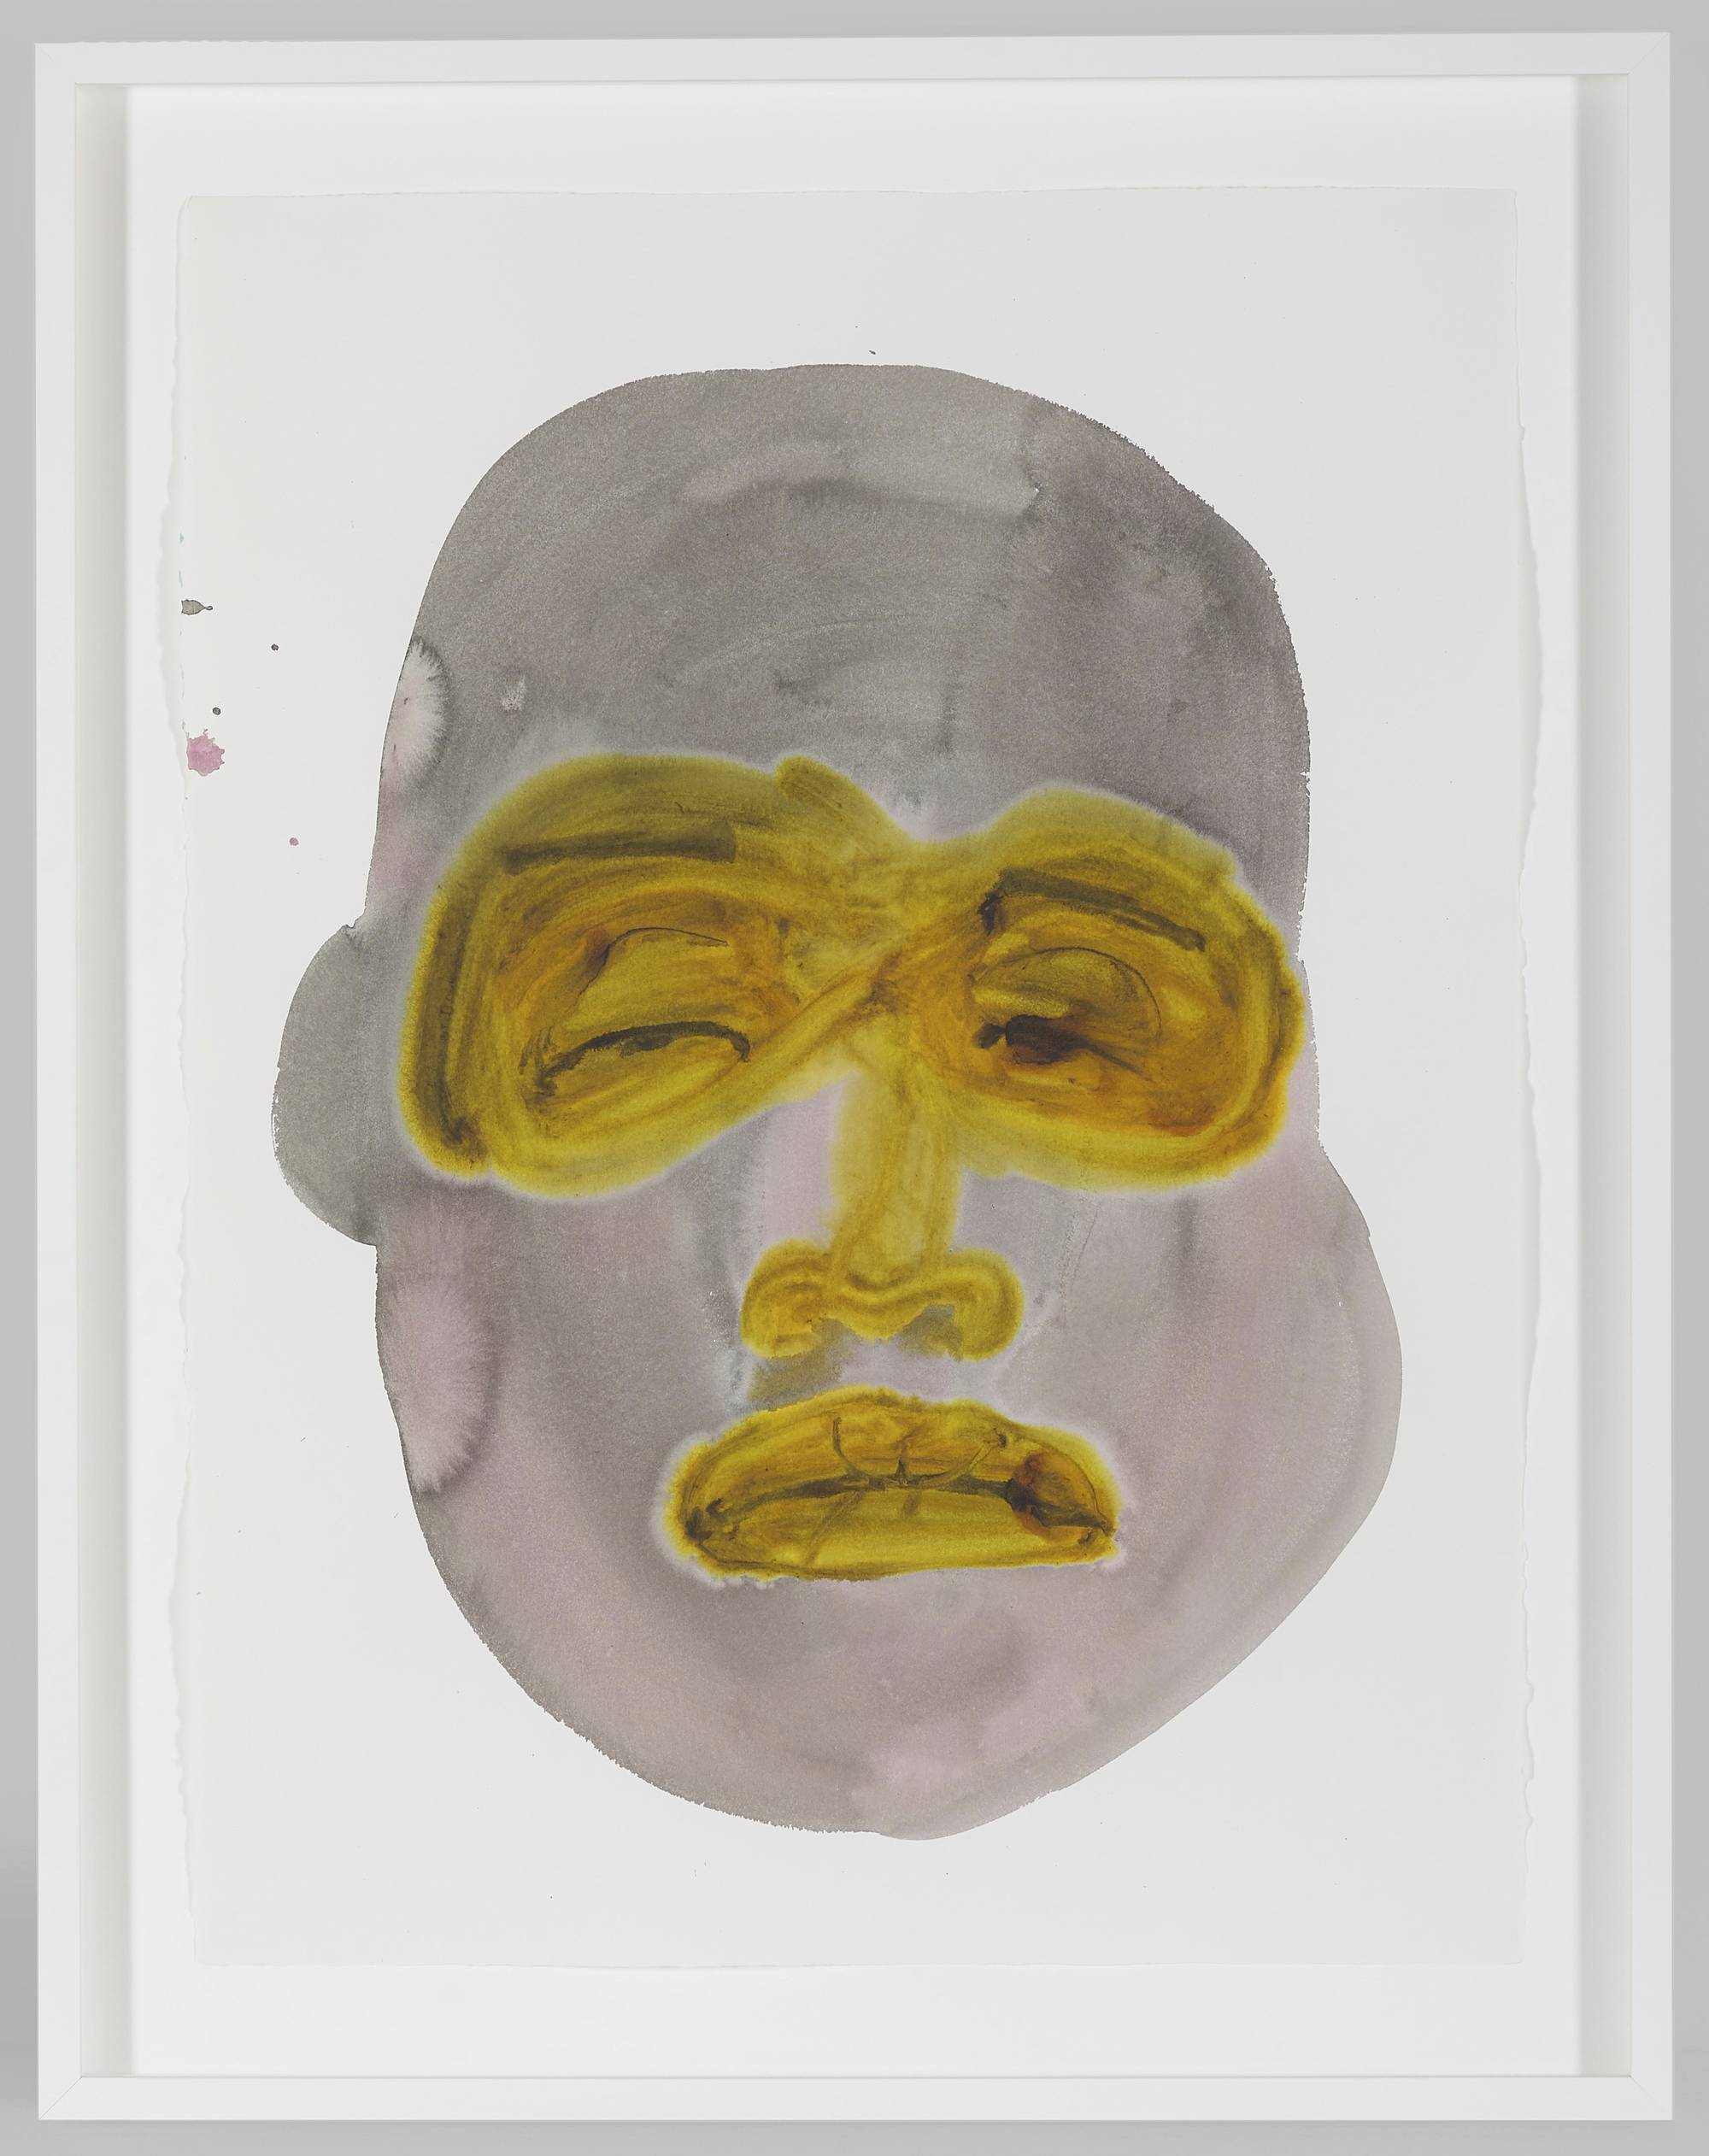 Image: Work by February James. Cluttered Contradictions, 2020, 30 x 22 inches. Watercolor and ink on paper. An expressive watercolor portrait is depicted in gray and pink hues. The eyes, nose, and lips of the face are mustard yellow. The portrait is exuding an unconvinced expression. Image courtesy of the artist and Monique Meloche Gallery.